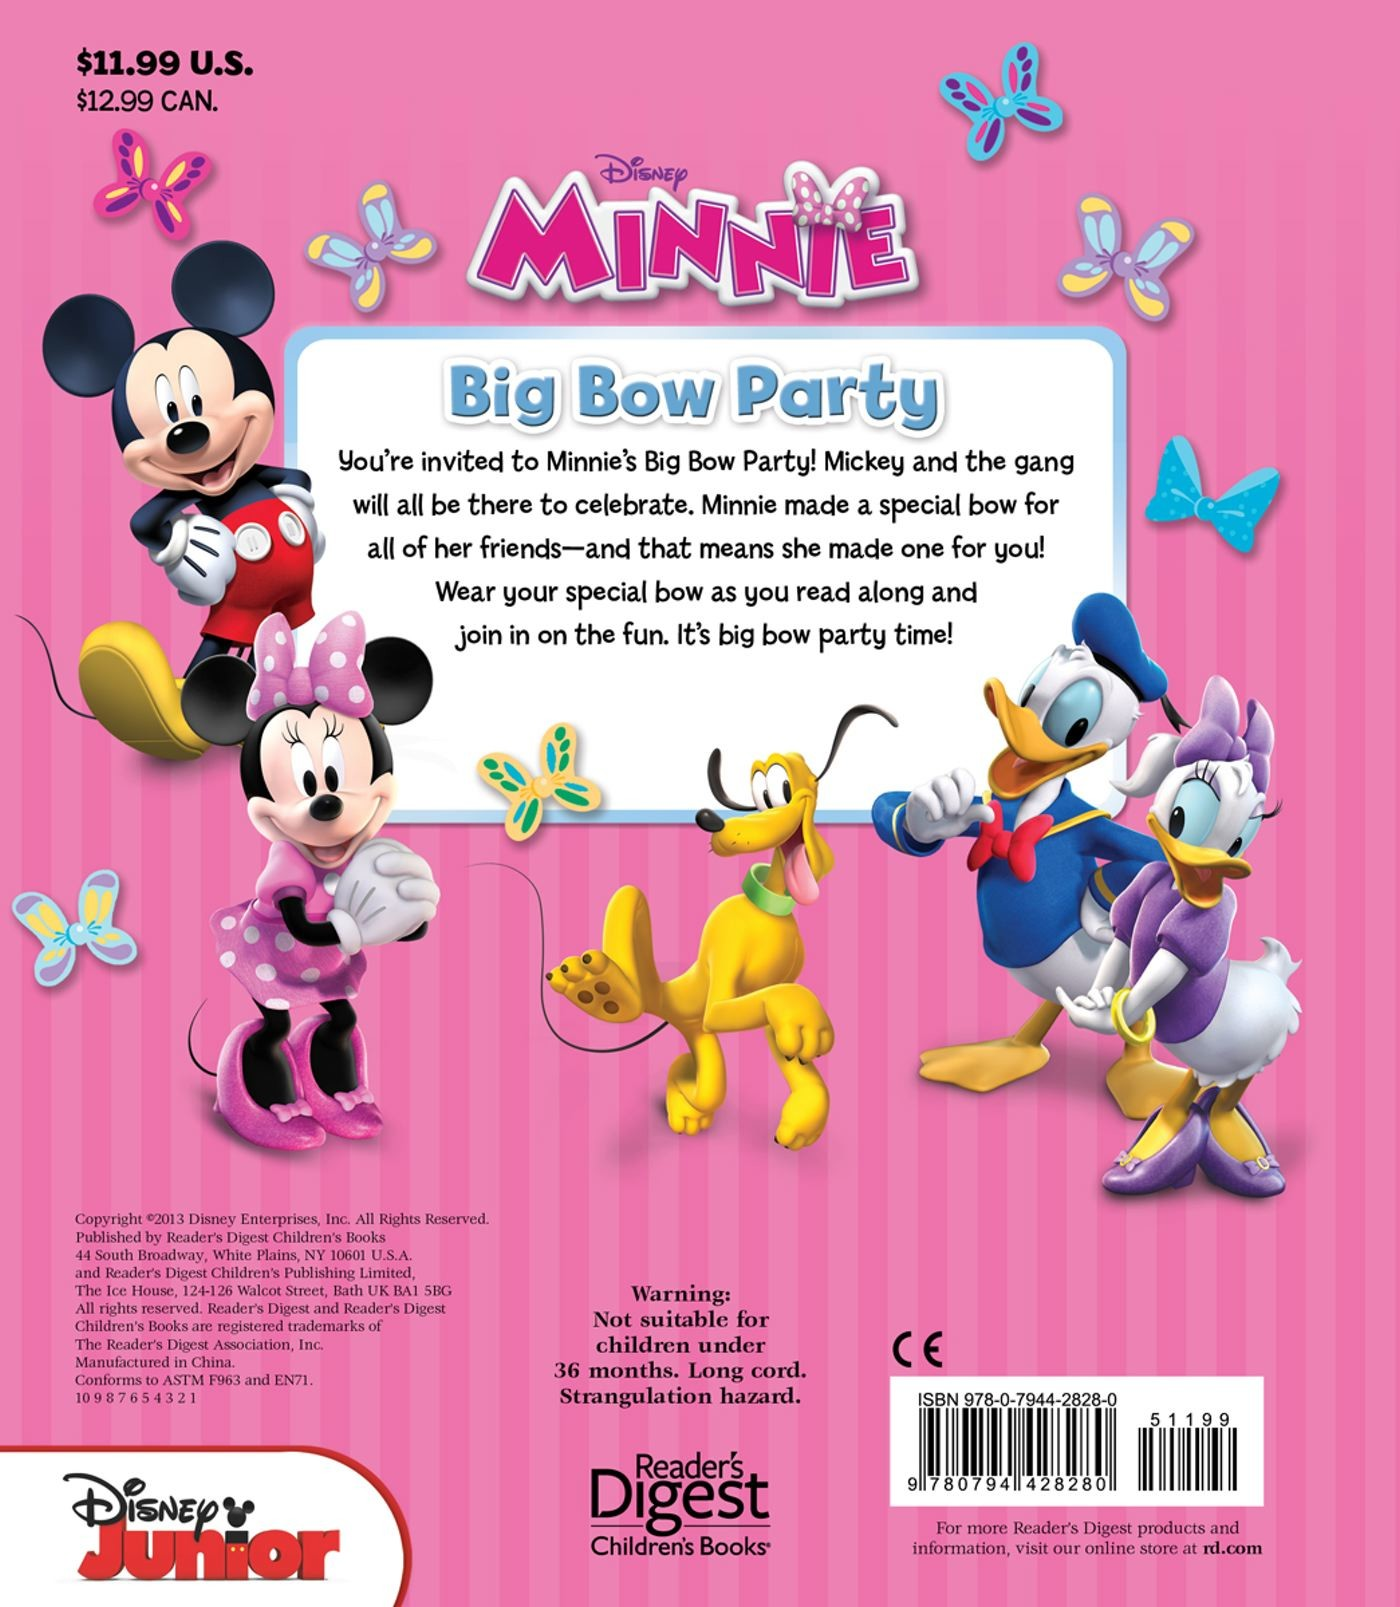 Disney-minnie-s-big-bow-party-9780794428280.in04